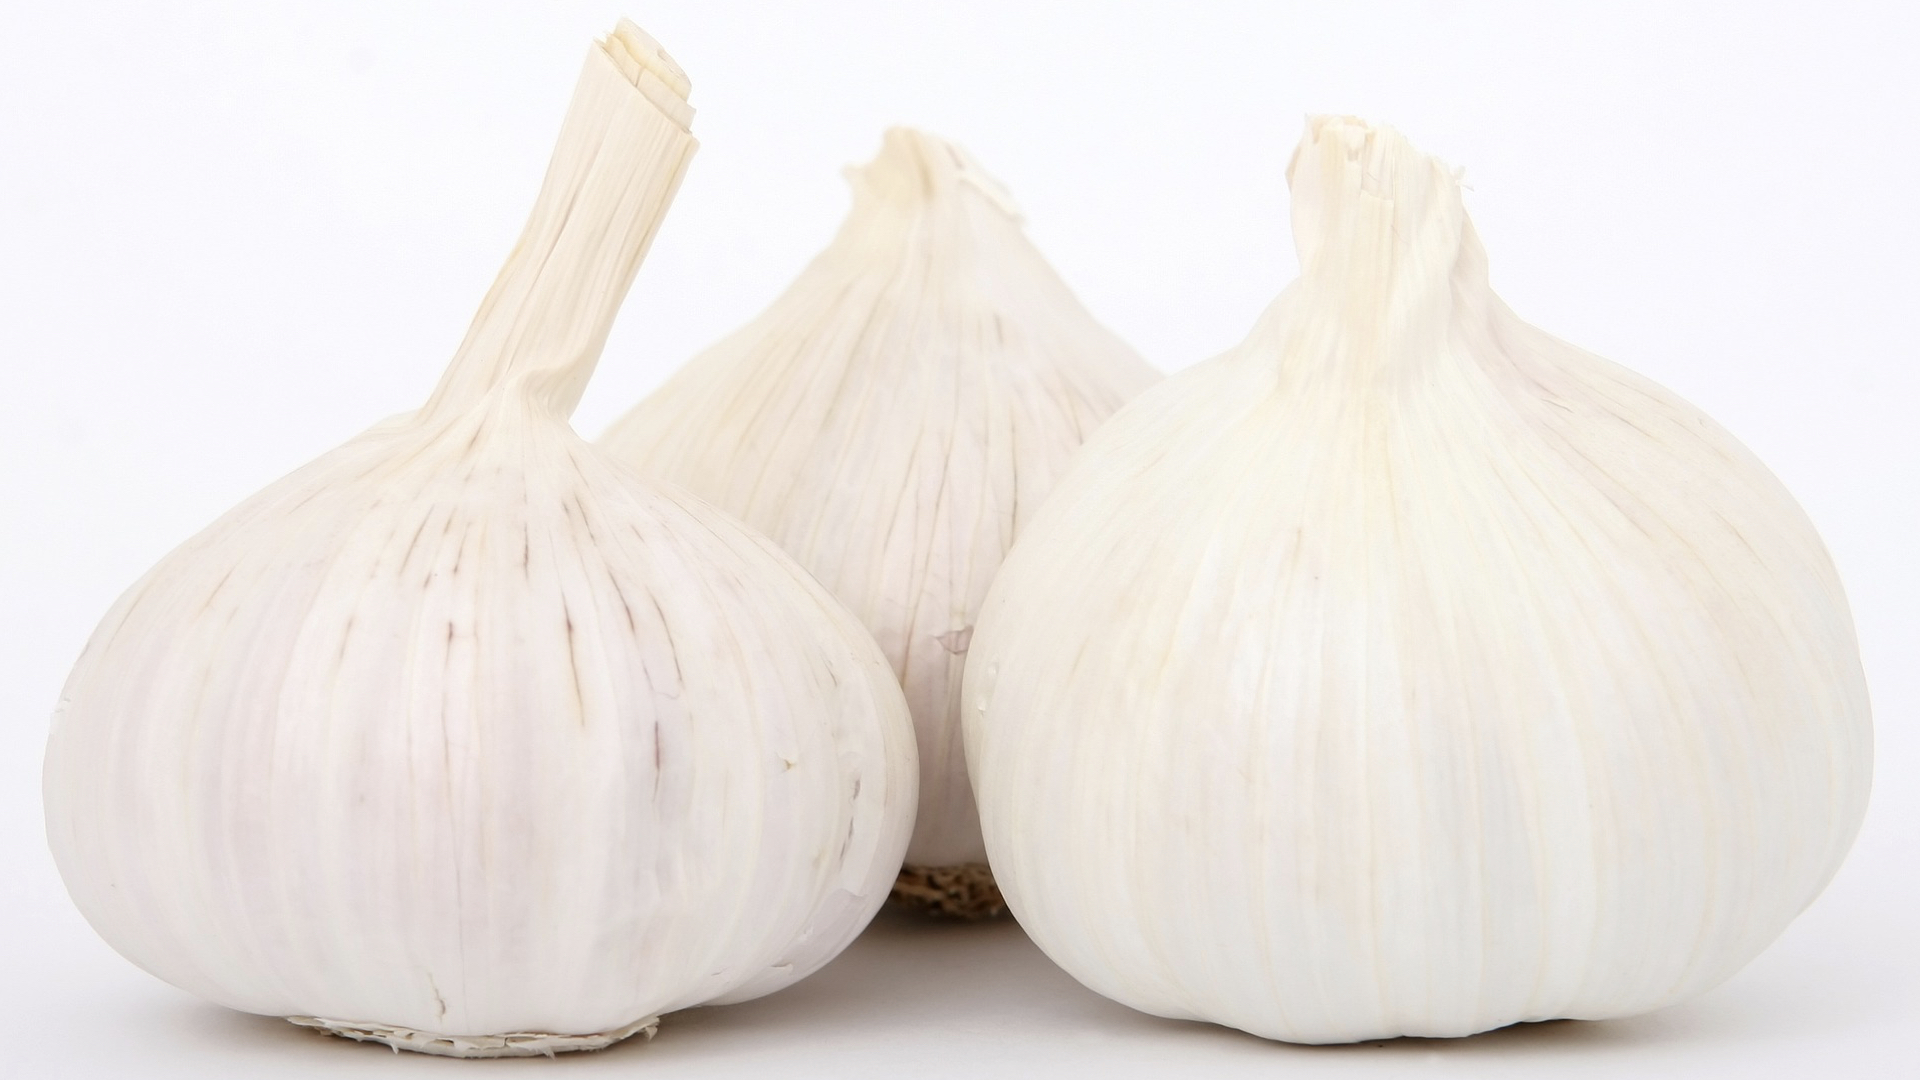 Benefits of Garlic for Fighting Cancer and the Common Cold